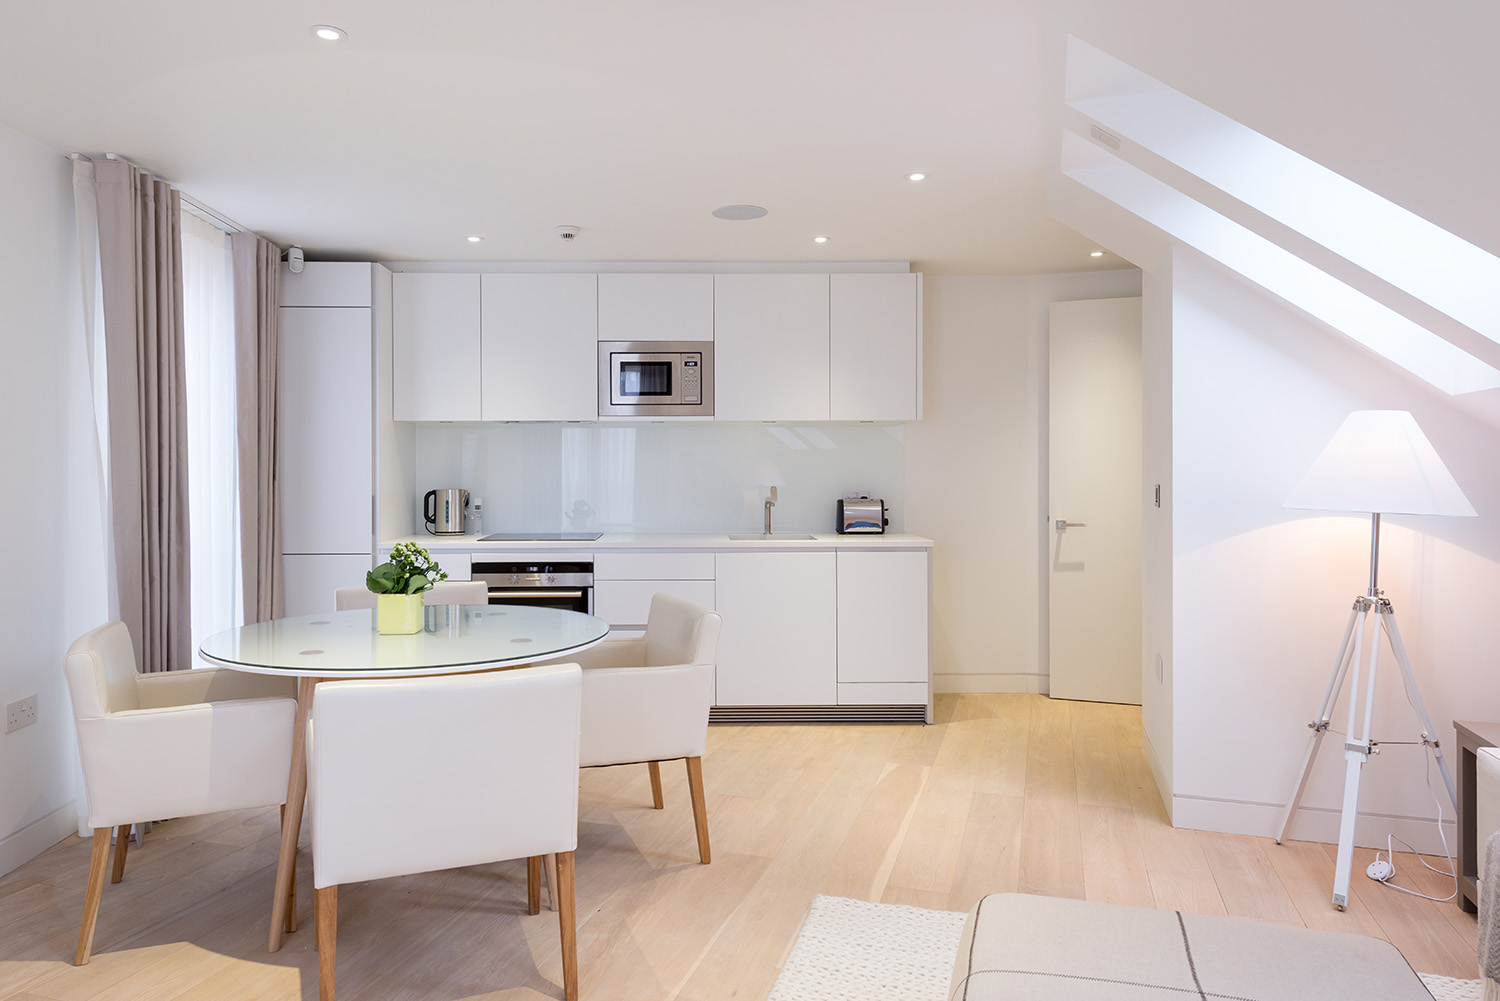 Covent Garden Kitchen Covent Garden Studio Wc2 Design Box London Luxury Interior